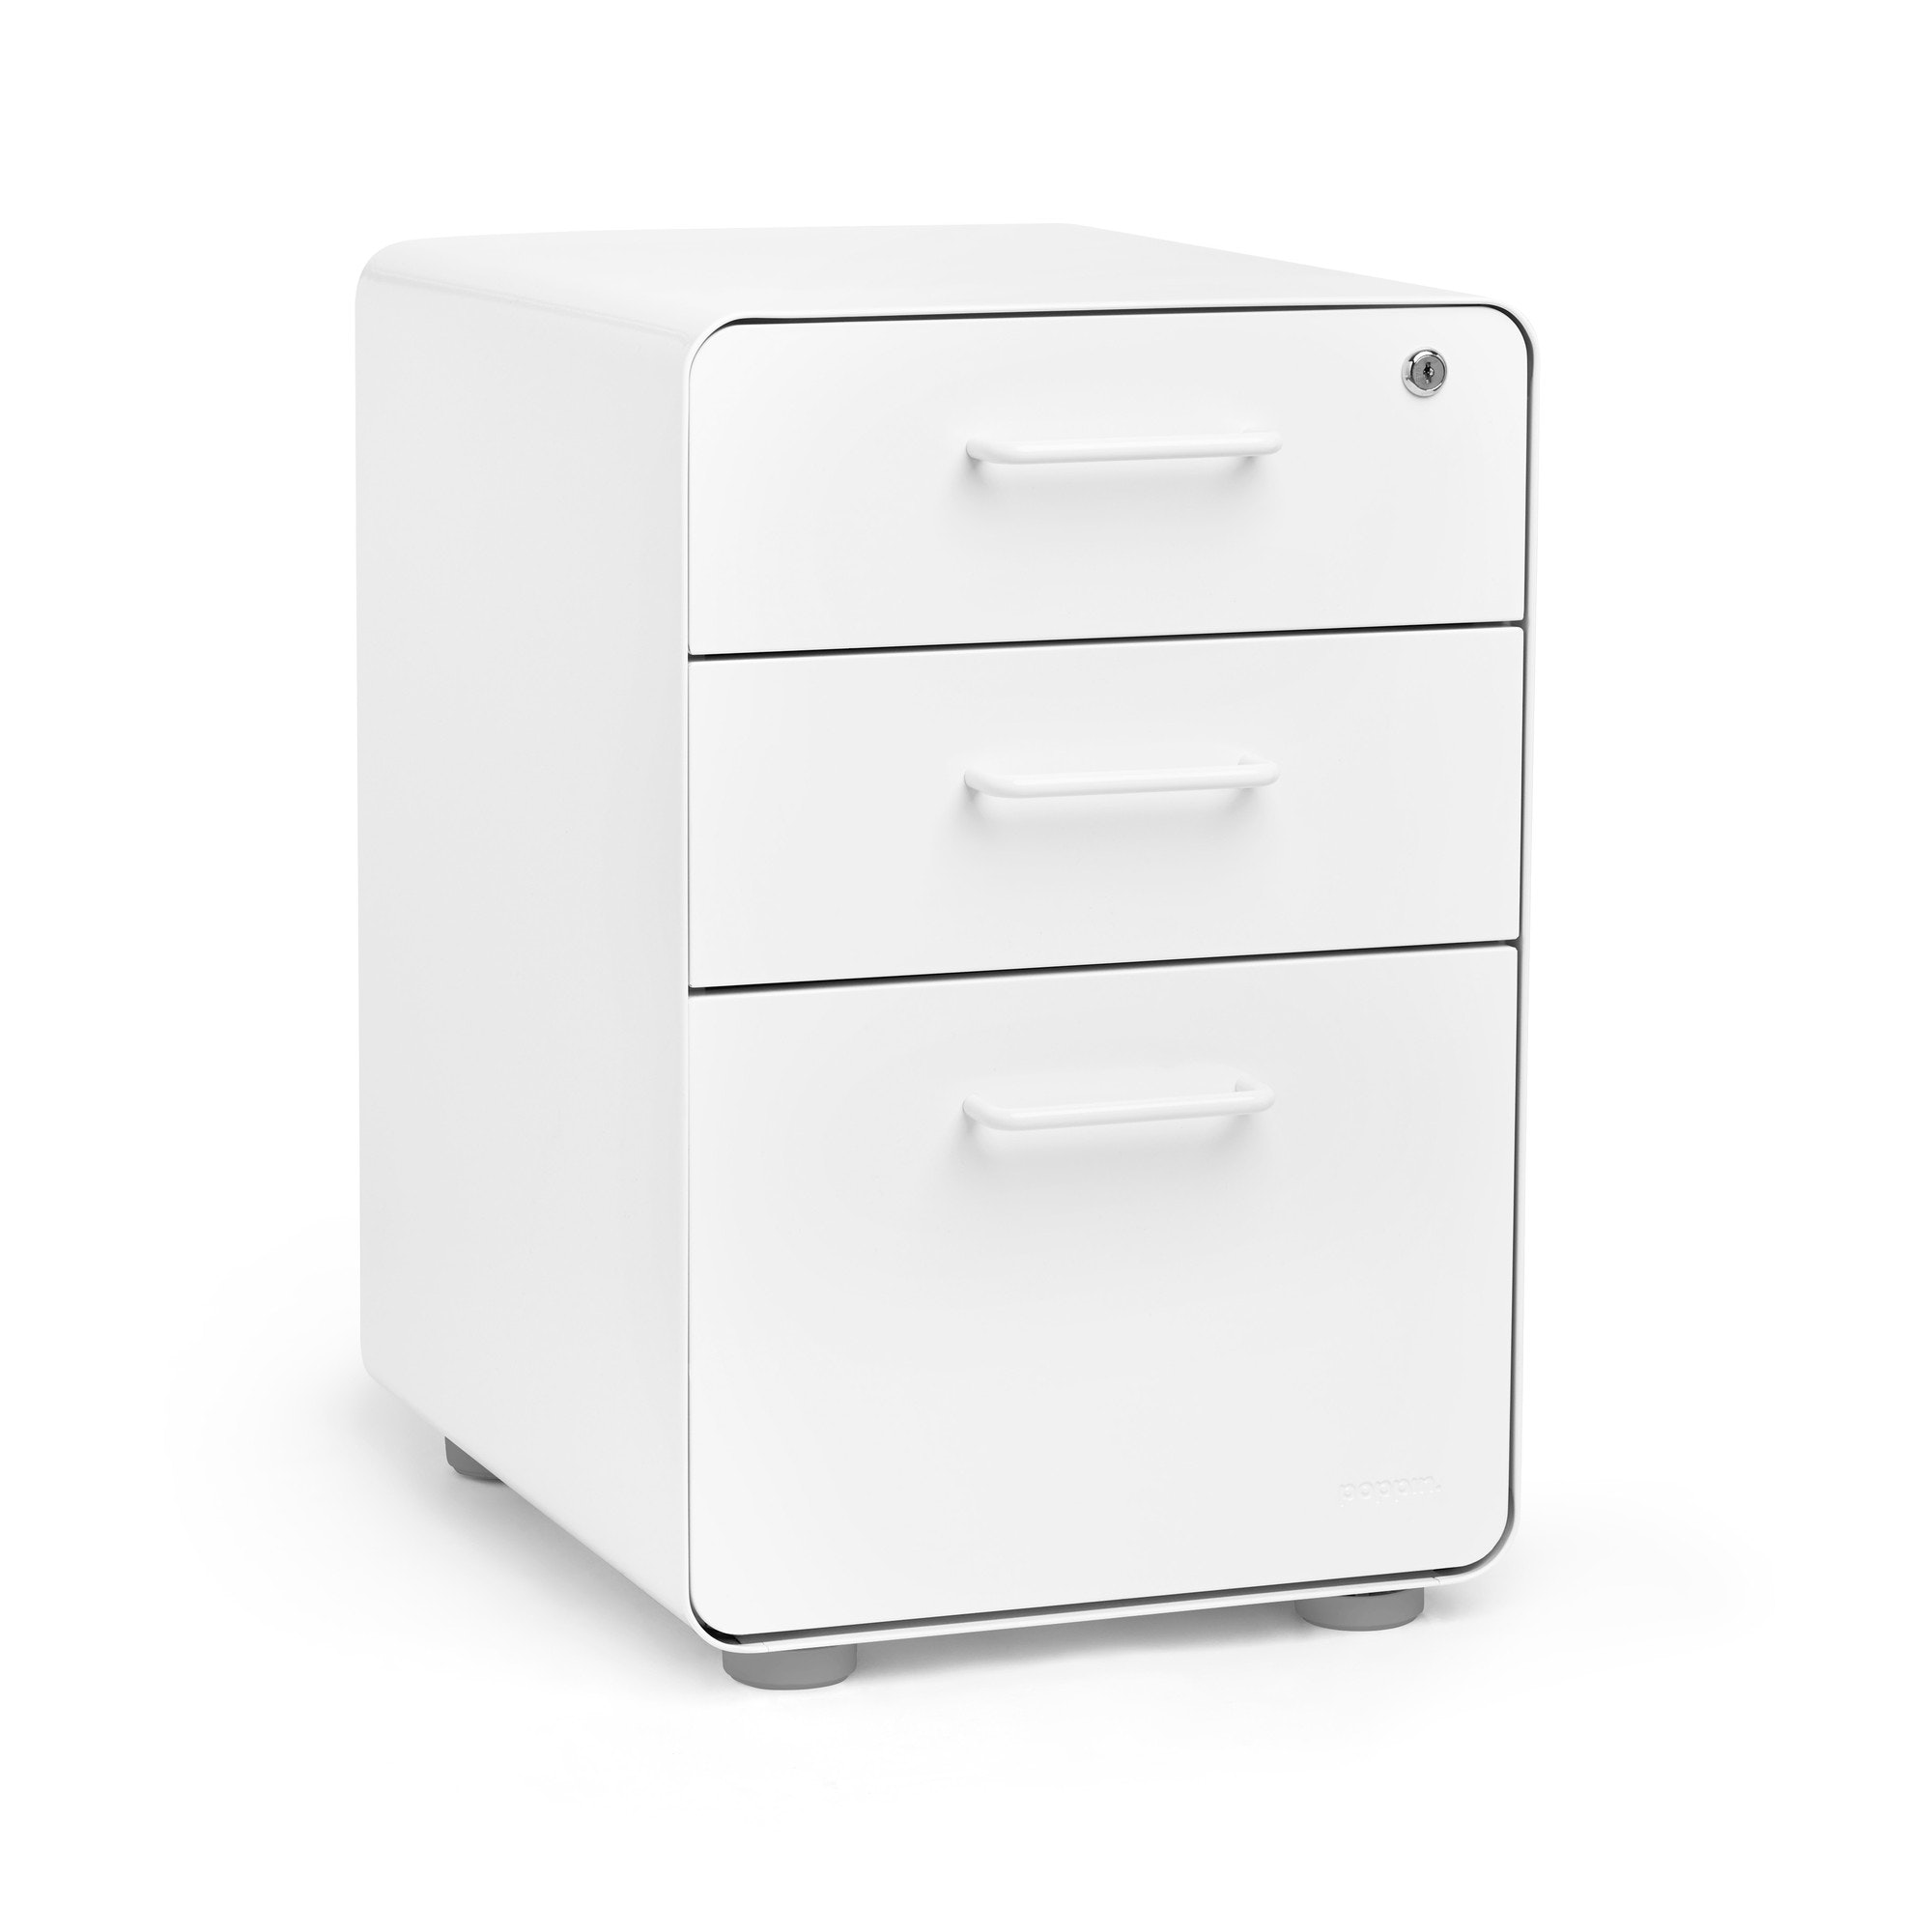 Incroyable White Stow 3 Drawer File Cabinet,White,hi Res